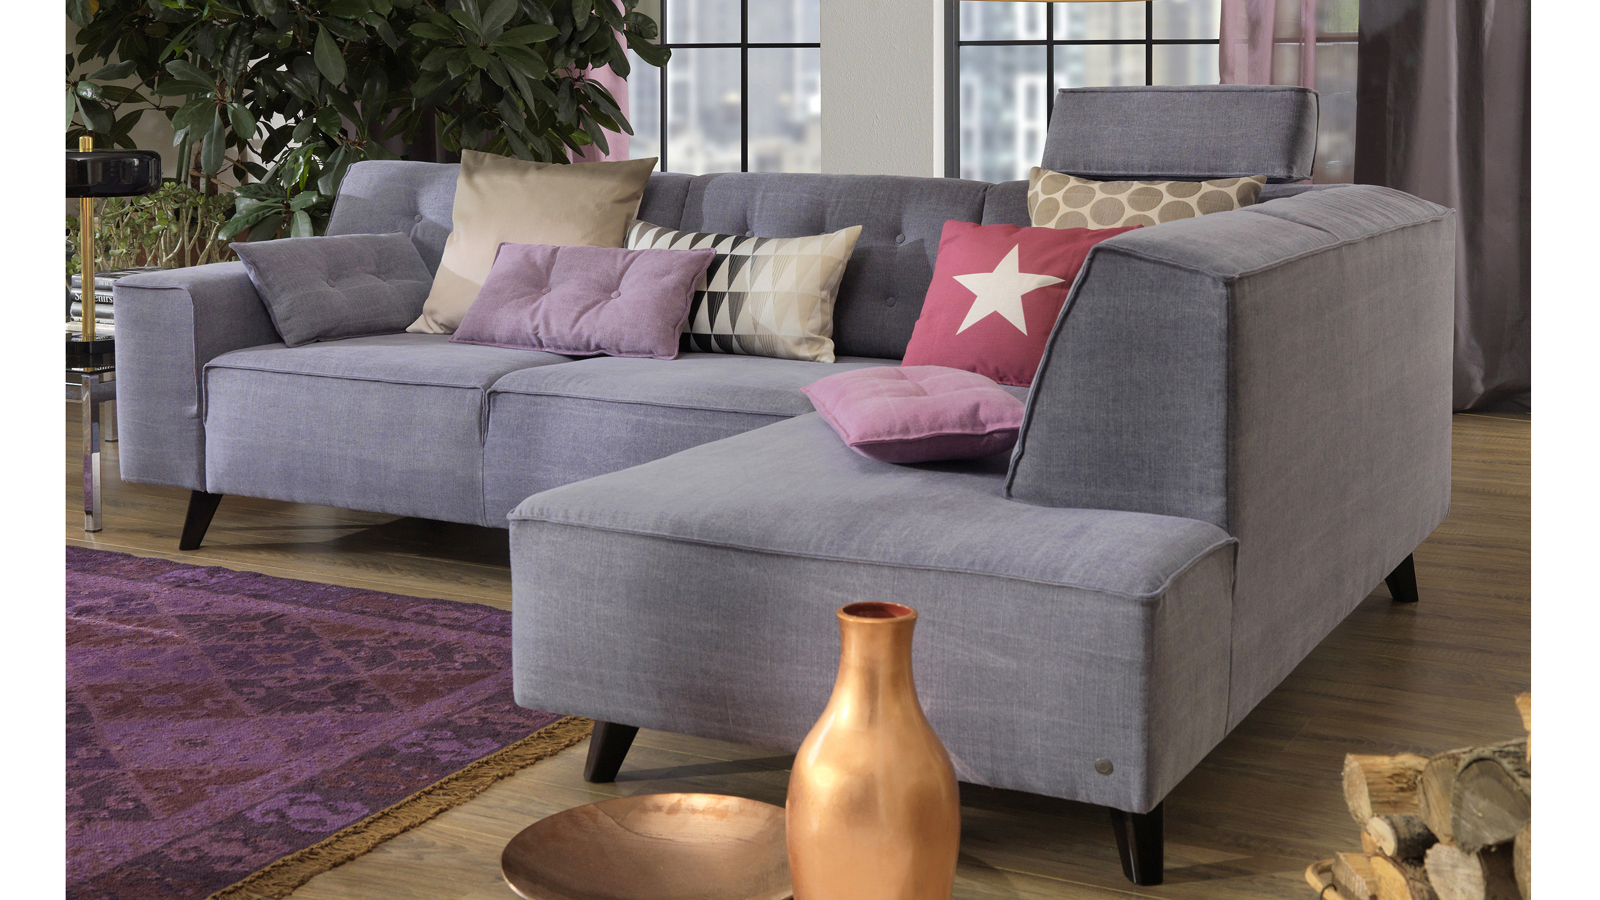 Full Size of Tom Tailor Sofa Heaven Casual Style Colors Xl Elements Otto Couch Big Cube Nordic Chic Ulrich Wohnen Auf Raten 3er Petrol Stressless 3 2 1 Sitzer Patchwork Sofa Sofa Tom Tailor